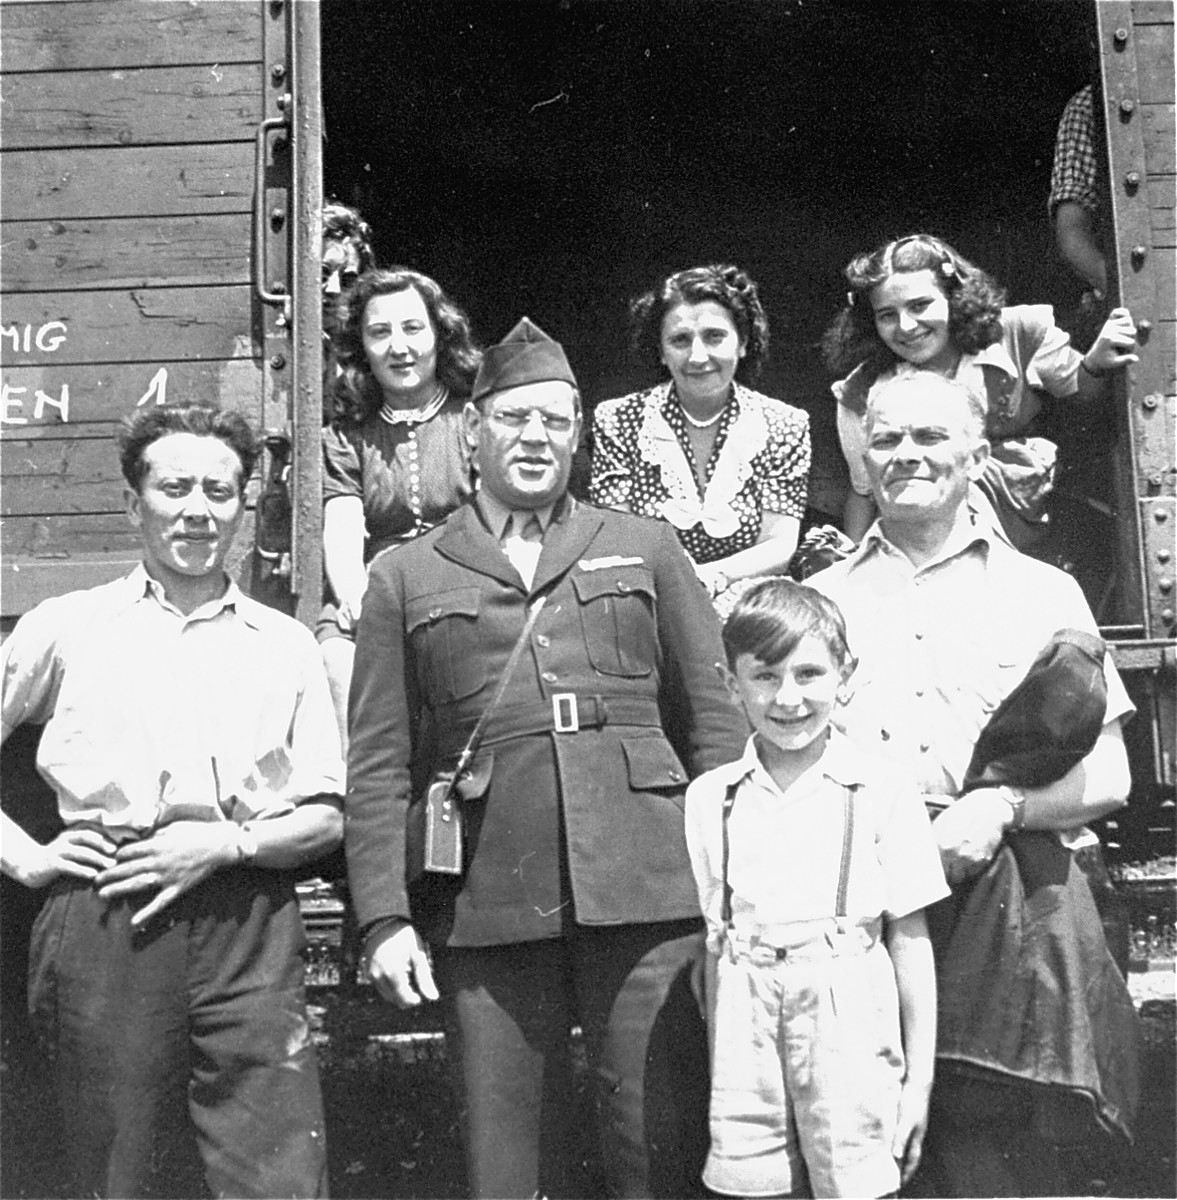 Departing Jewish DPs pose in the open door of a railcar with Saul Sorrin, director of the Neu Friemann displaced persons camp.